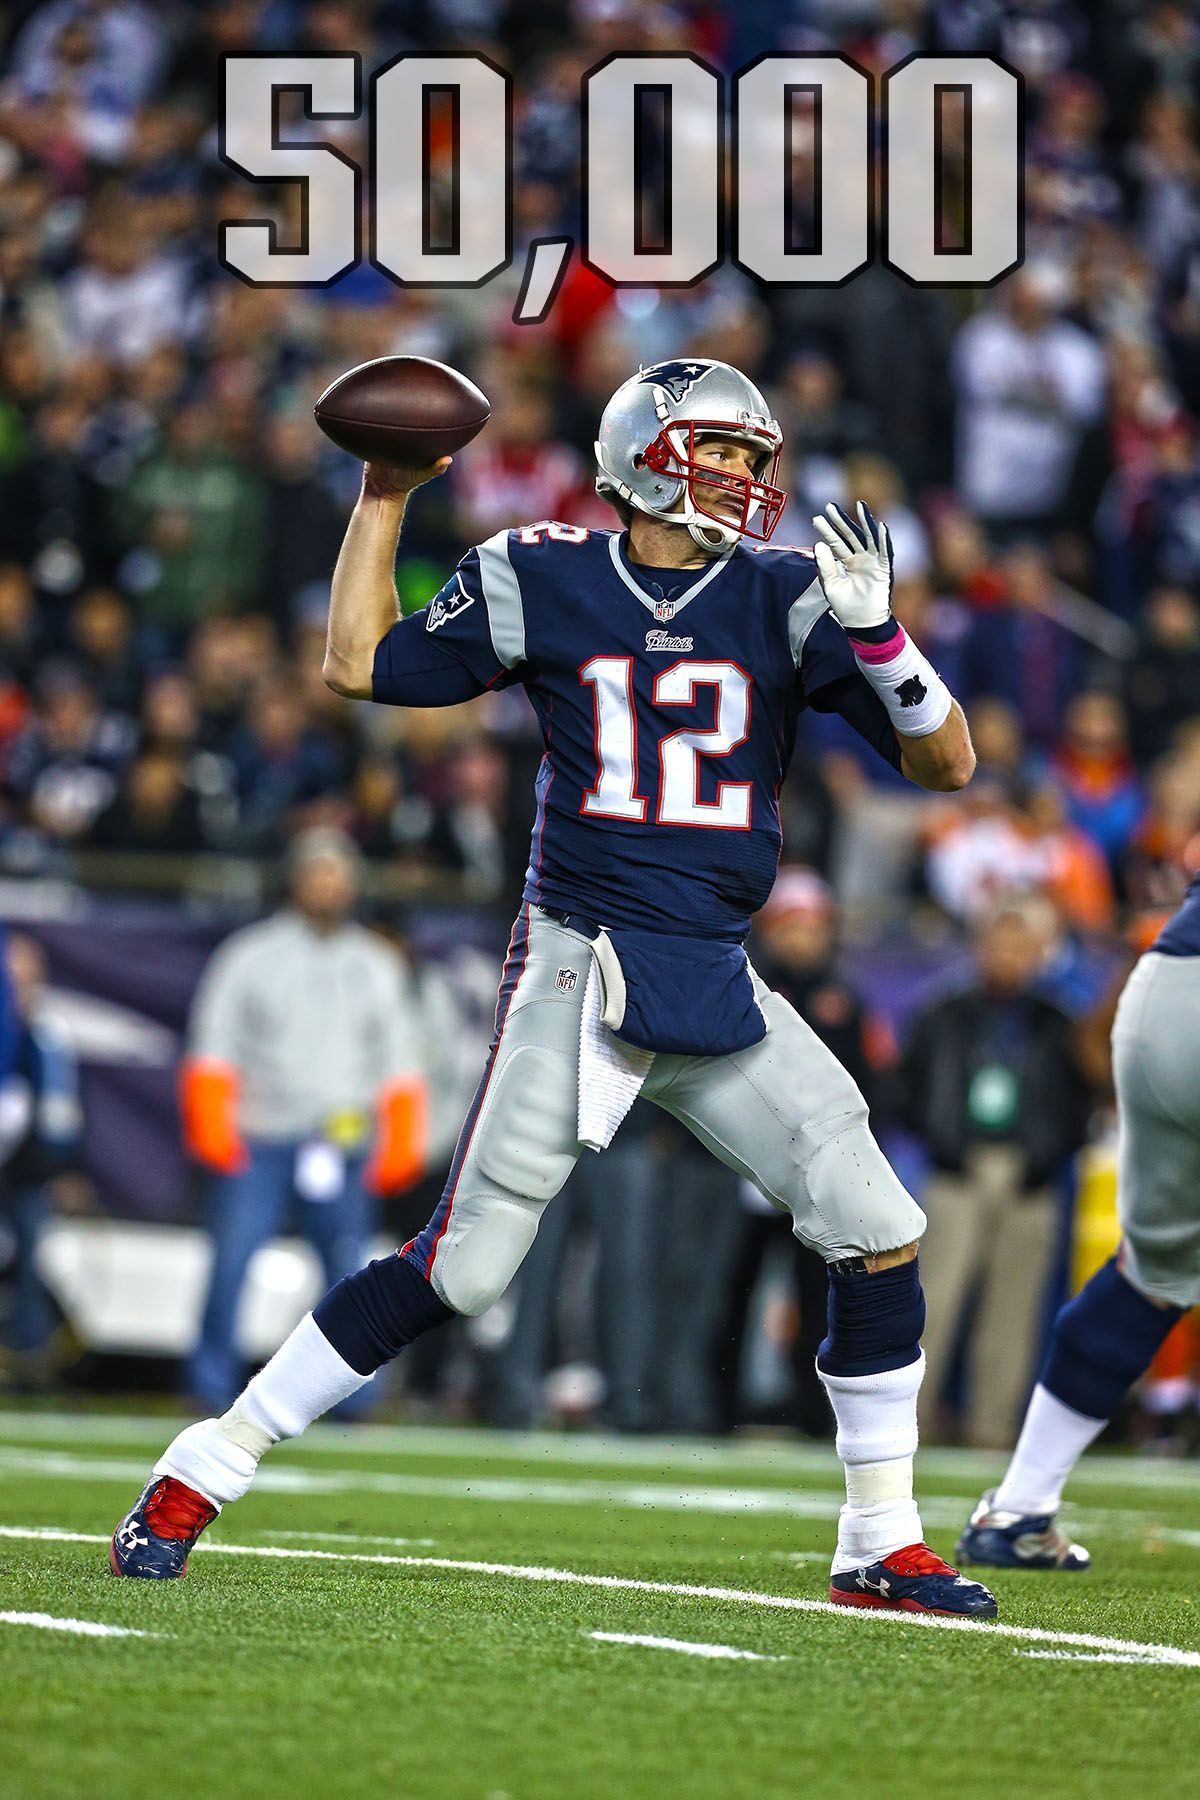 Tom Brady Became The 6th Qb In Nfl History To Pass For 50 000 Yards Cinvsne Nfl New England Patriots New England Patriots Patriots Football